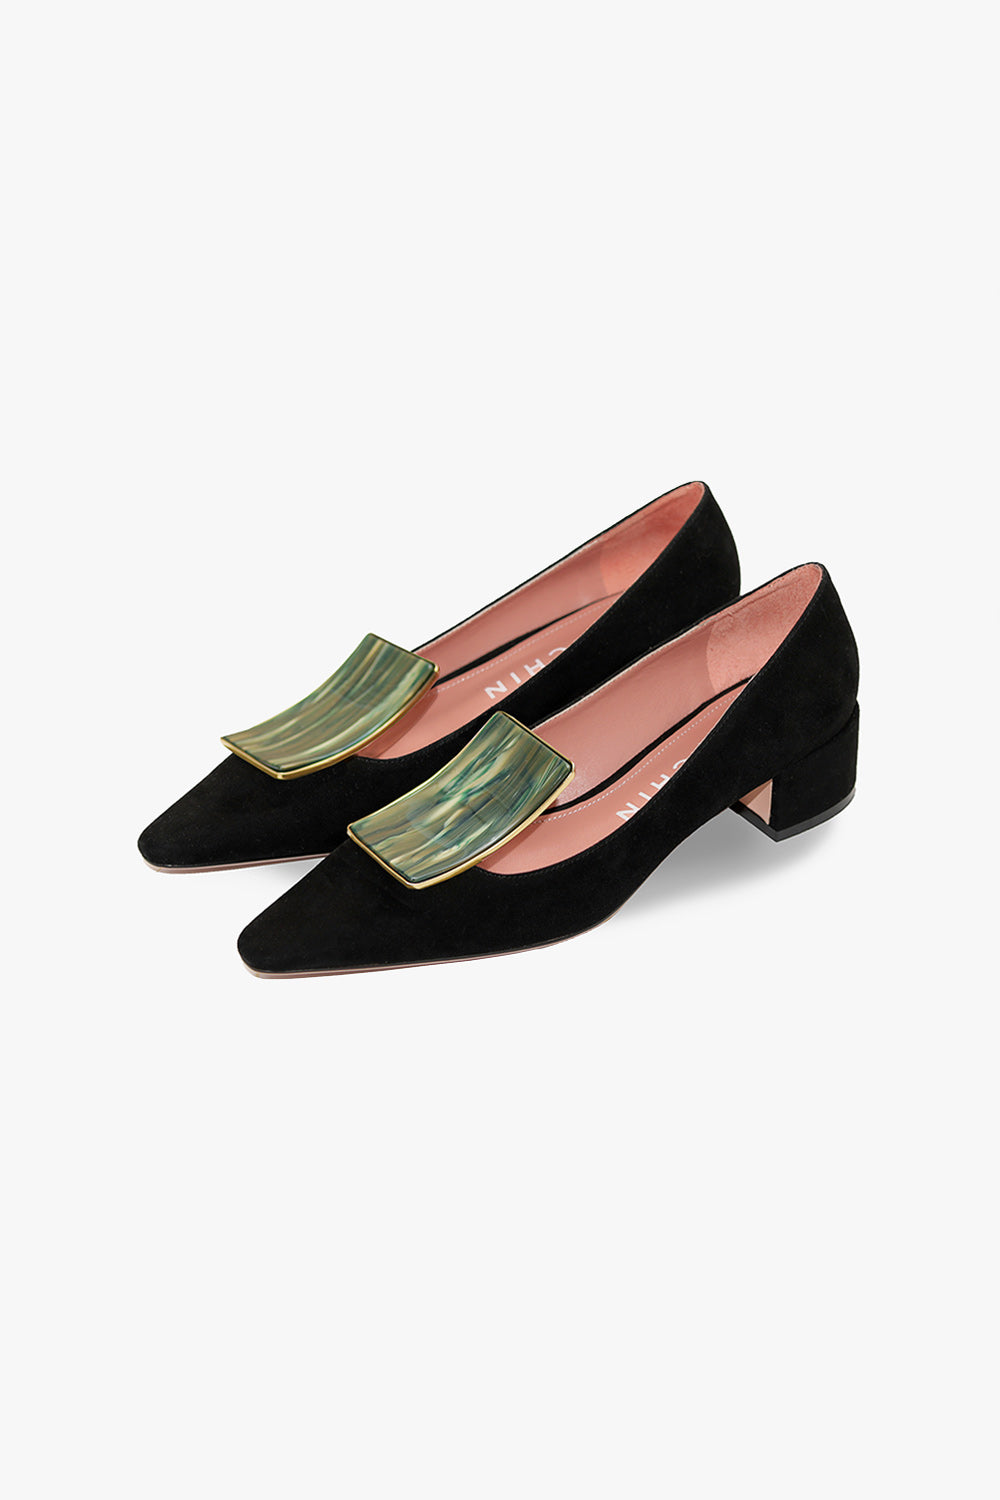 Gemstone Low Heel Suede Pump